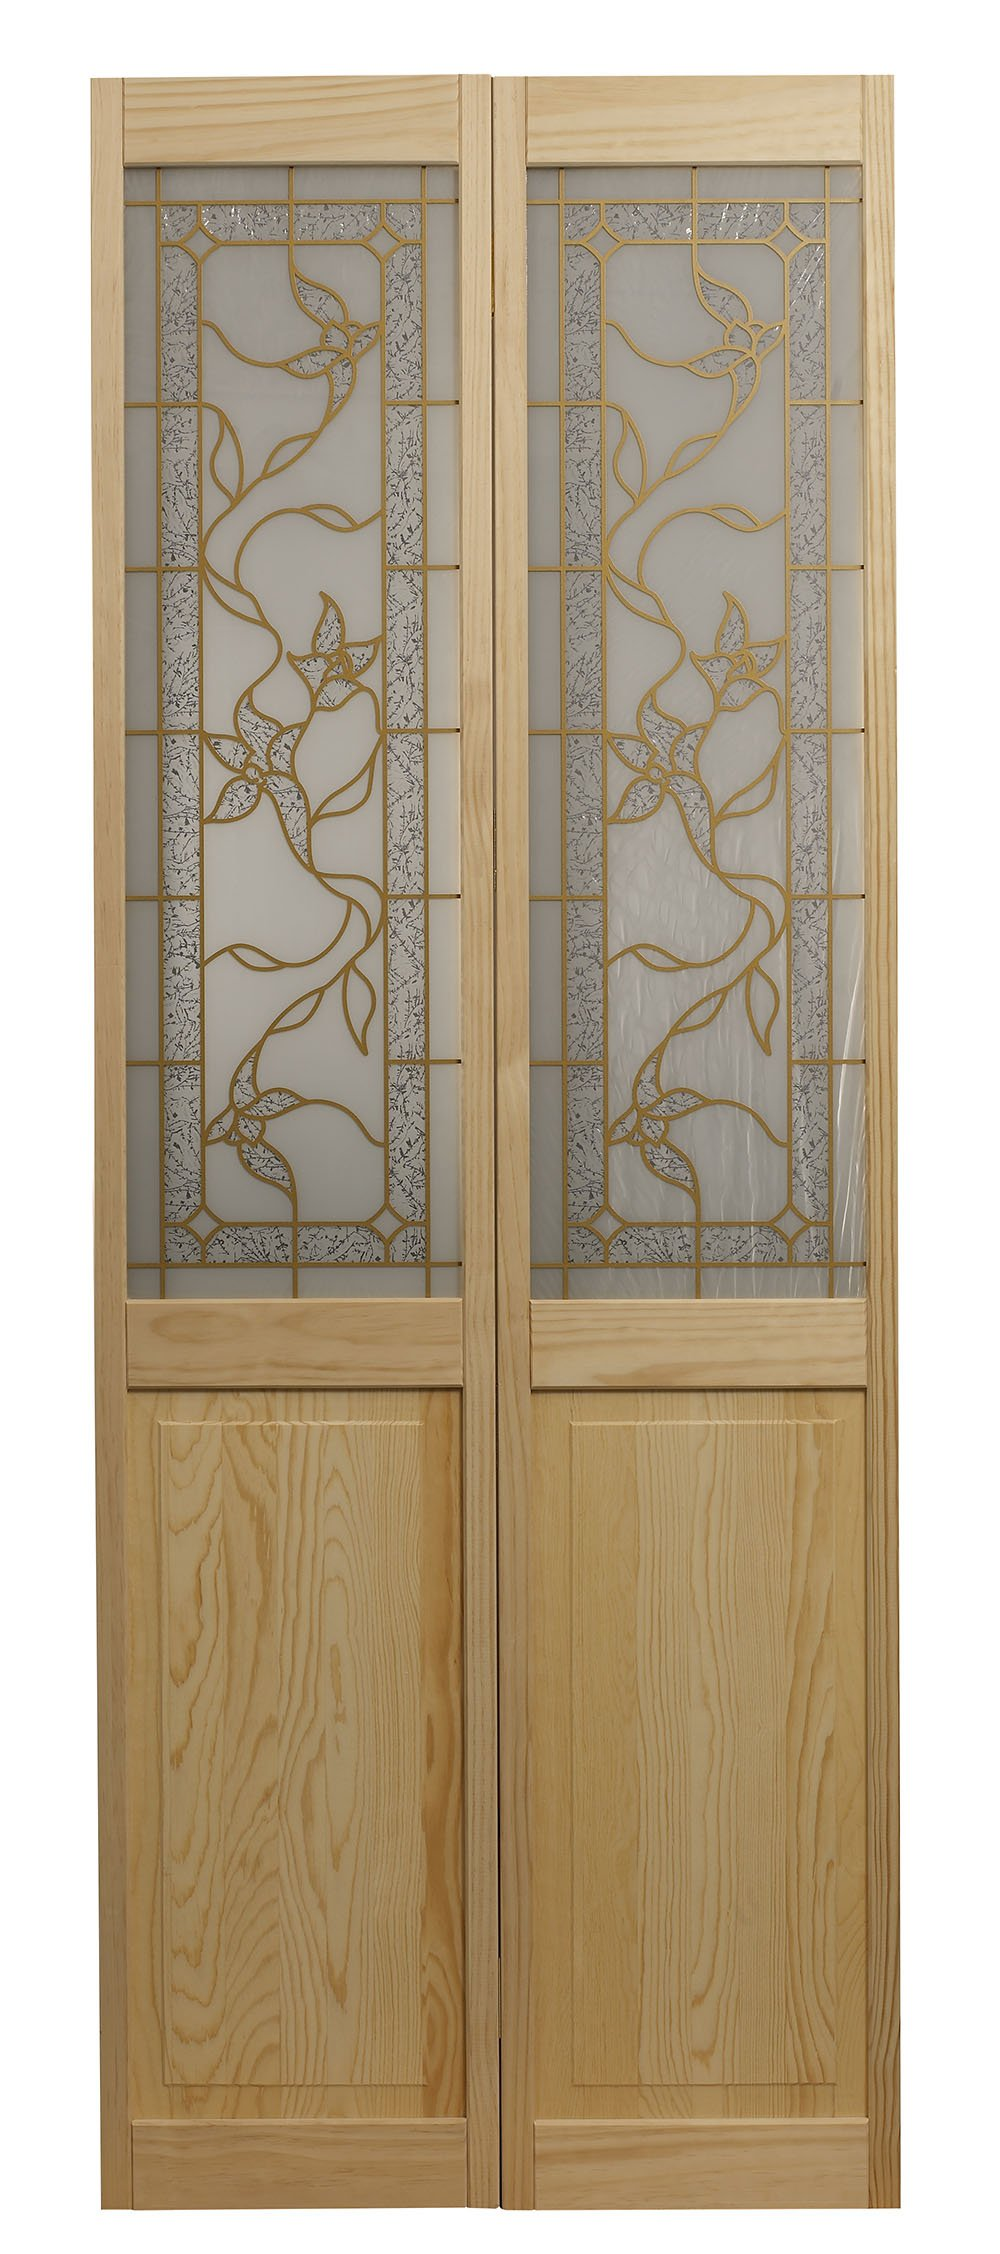 Pinecroft 861726 Giverny Half Glass Bifold Interior Wood Door, 30'' x 80'', Unfinished by LTL Home Products